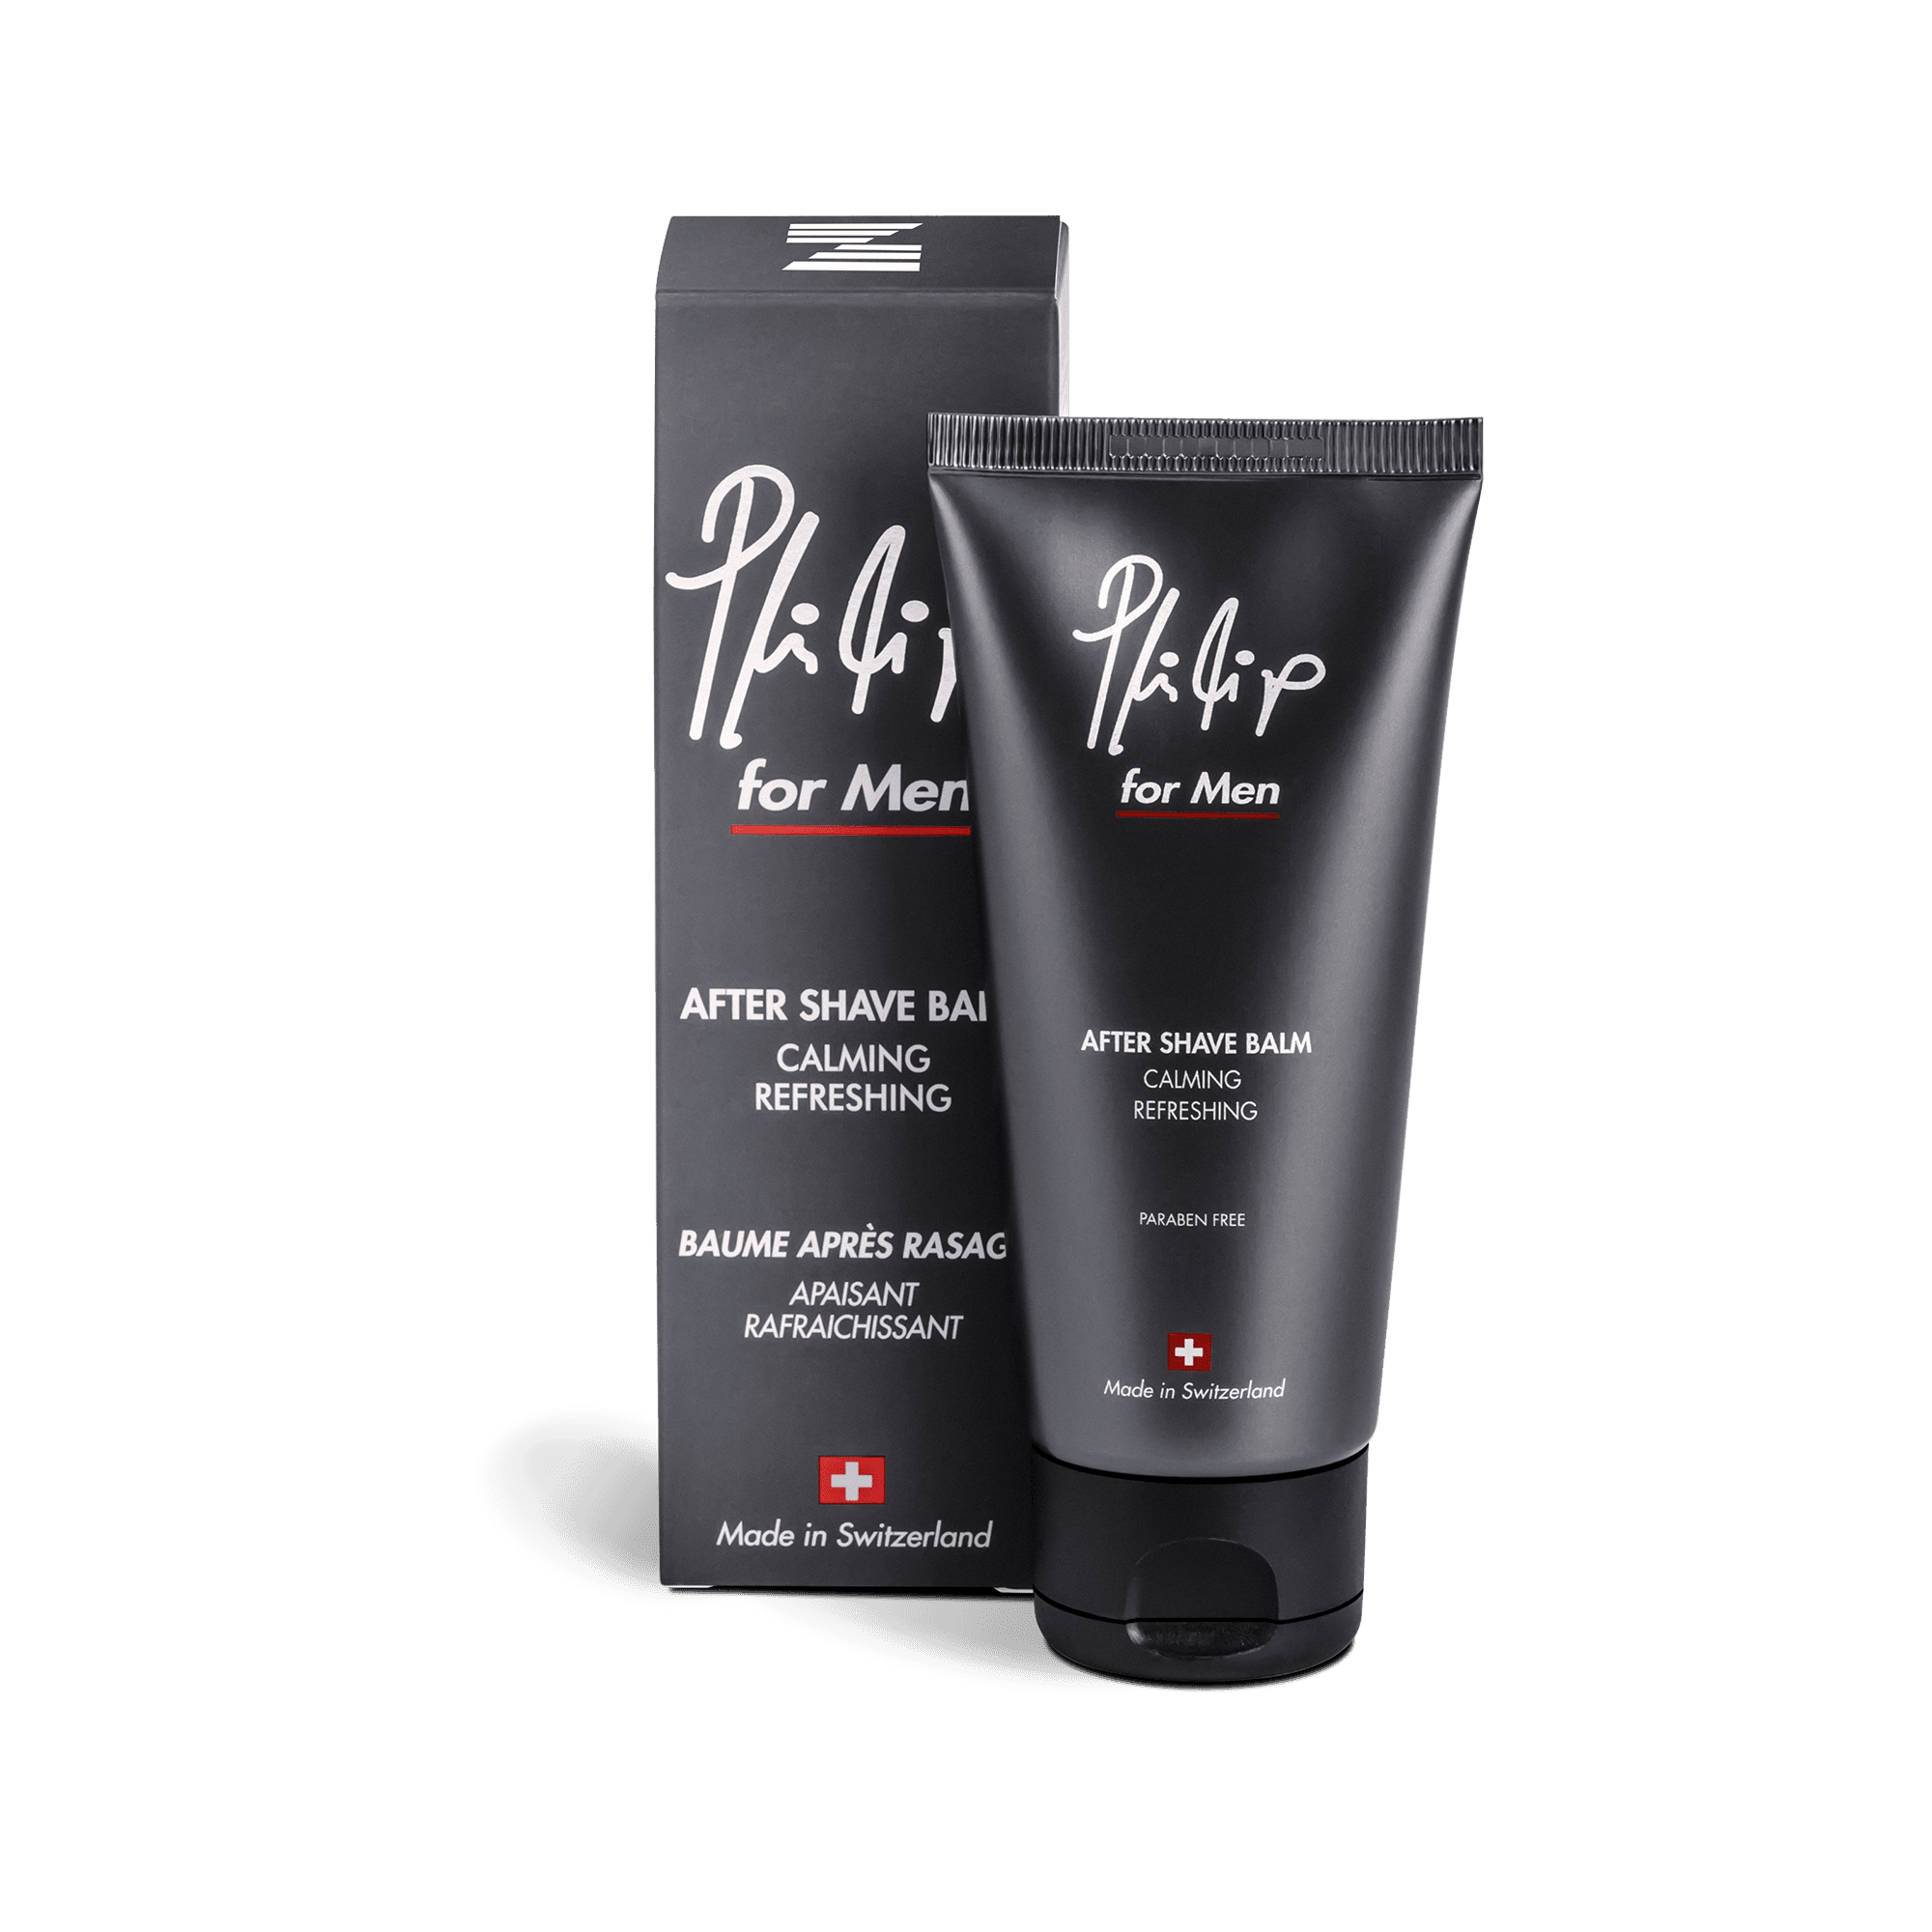 After Shave Balm - Philip for Men